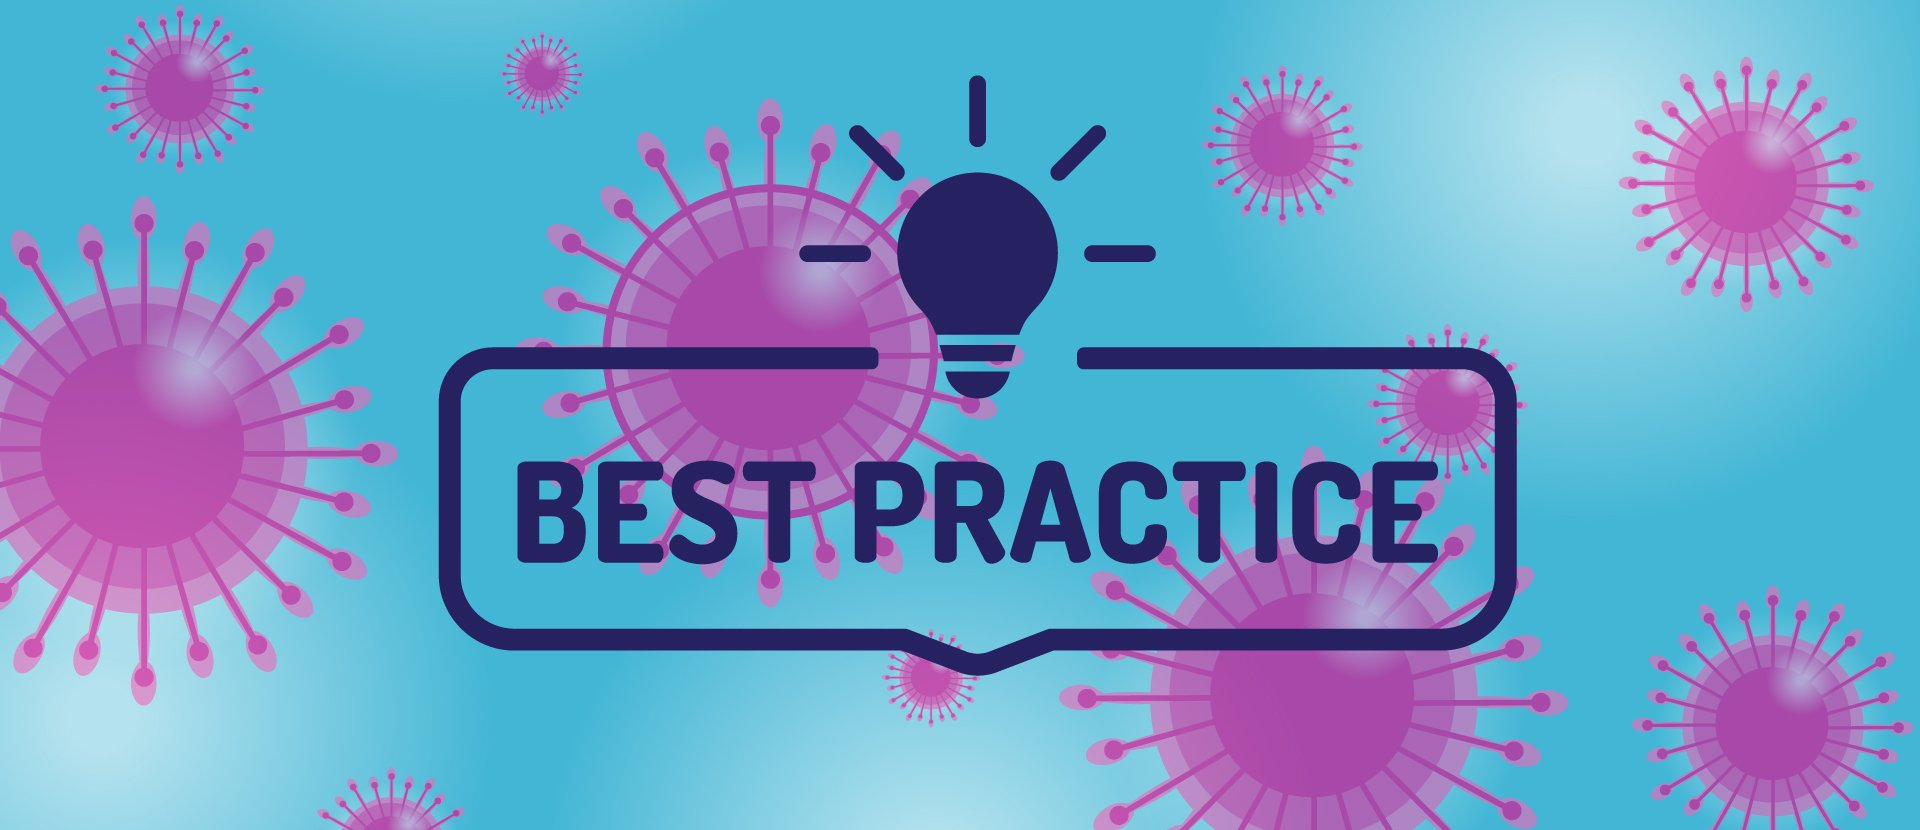 best practice for key workers